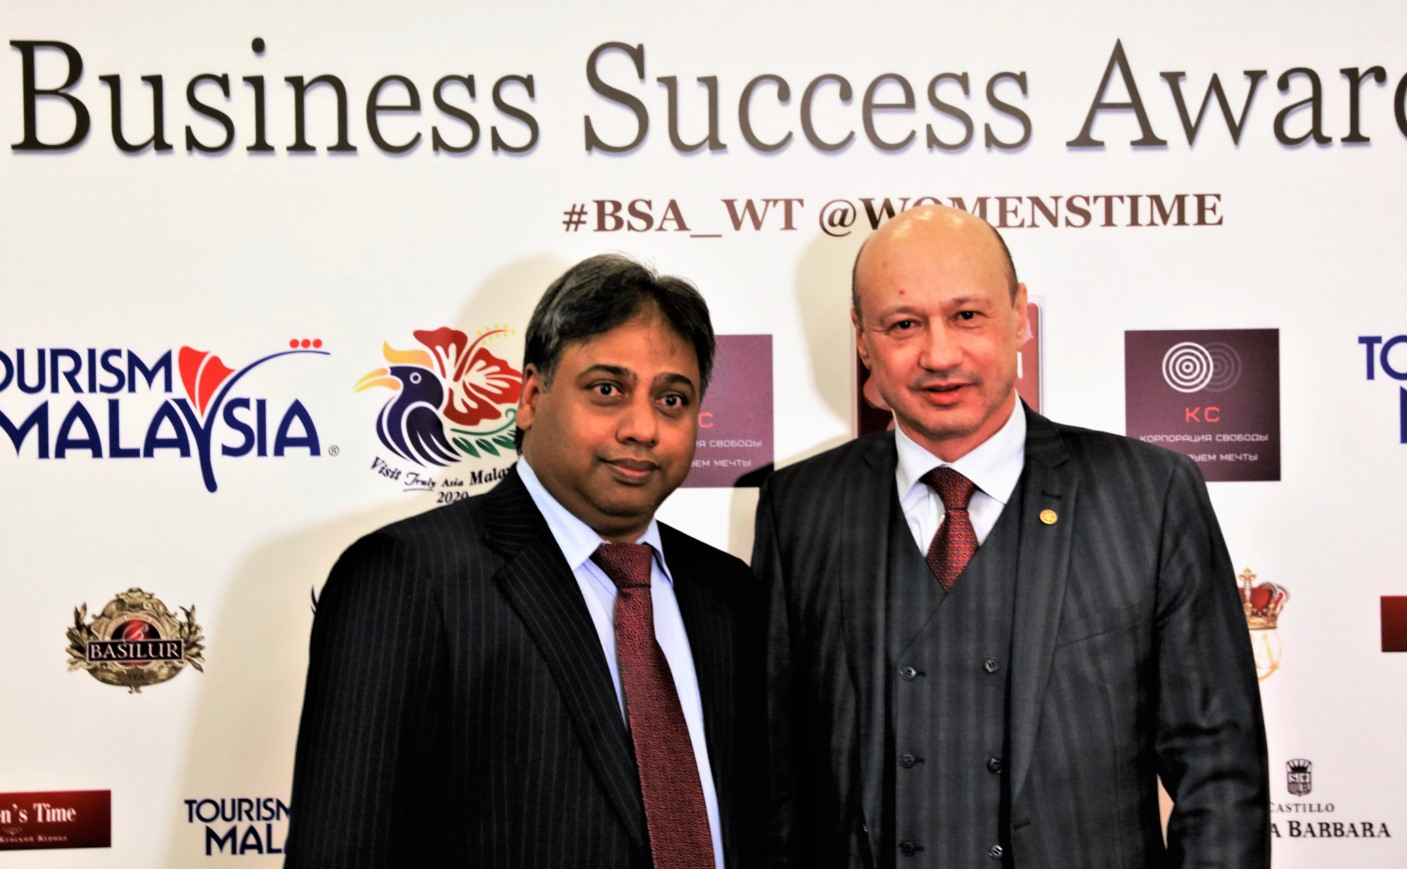 belgorodskiy-rsu-kosigin-santhosh-tumadin-business-success-awards-2019-2